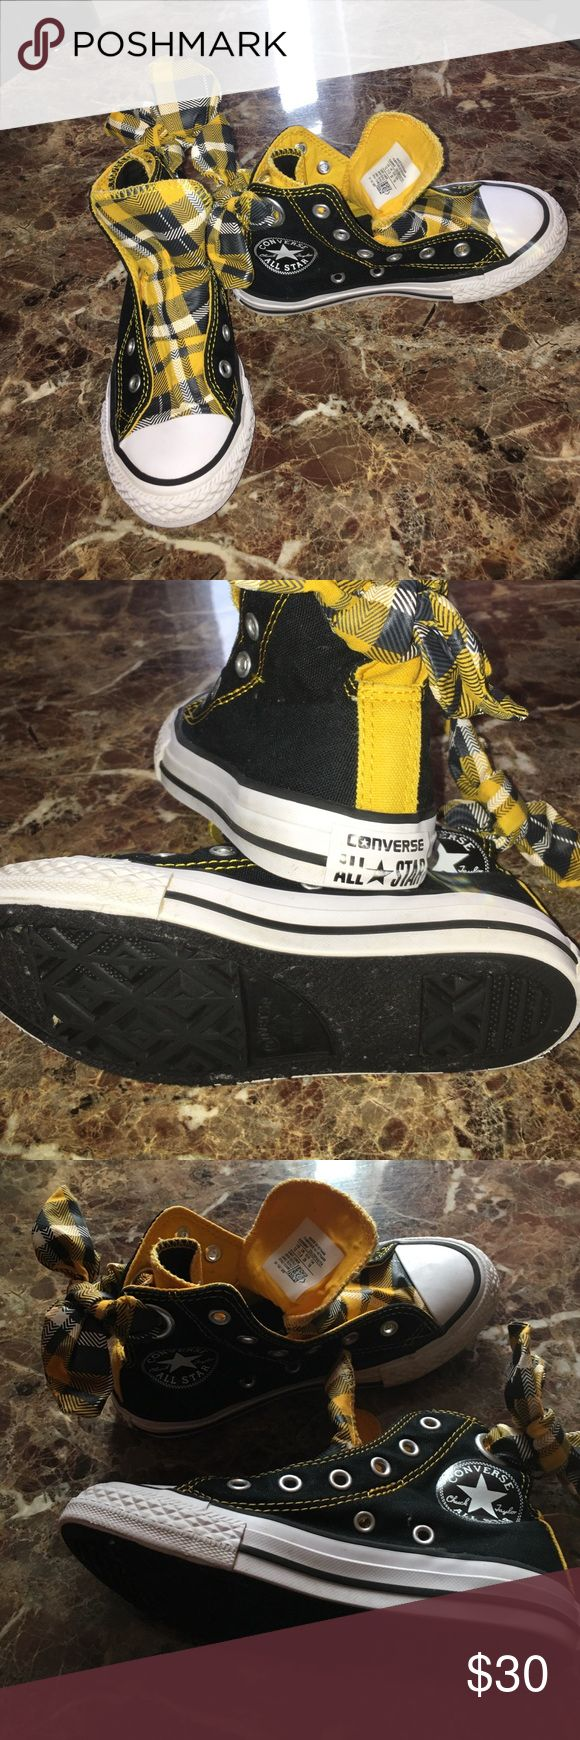 Converses Black and yellow and white converses Chuck Taylor All-Stars for girls size (12) kids /Used in good condition Converse Shoes Sneakers